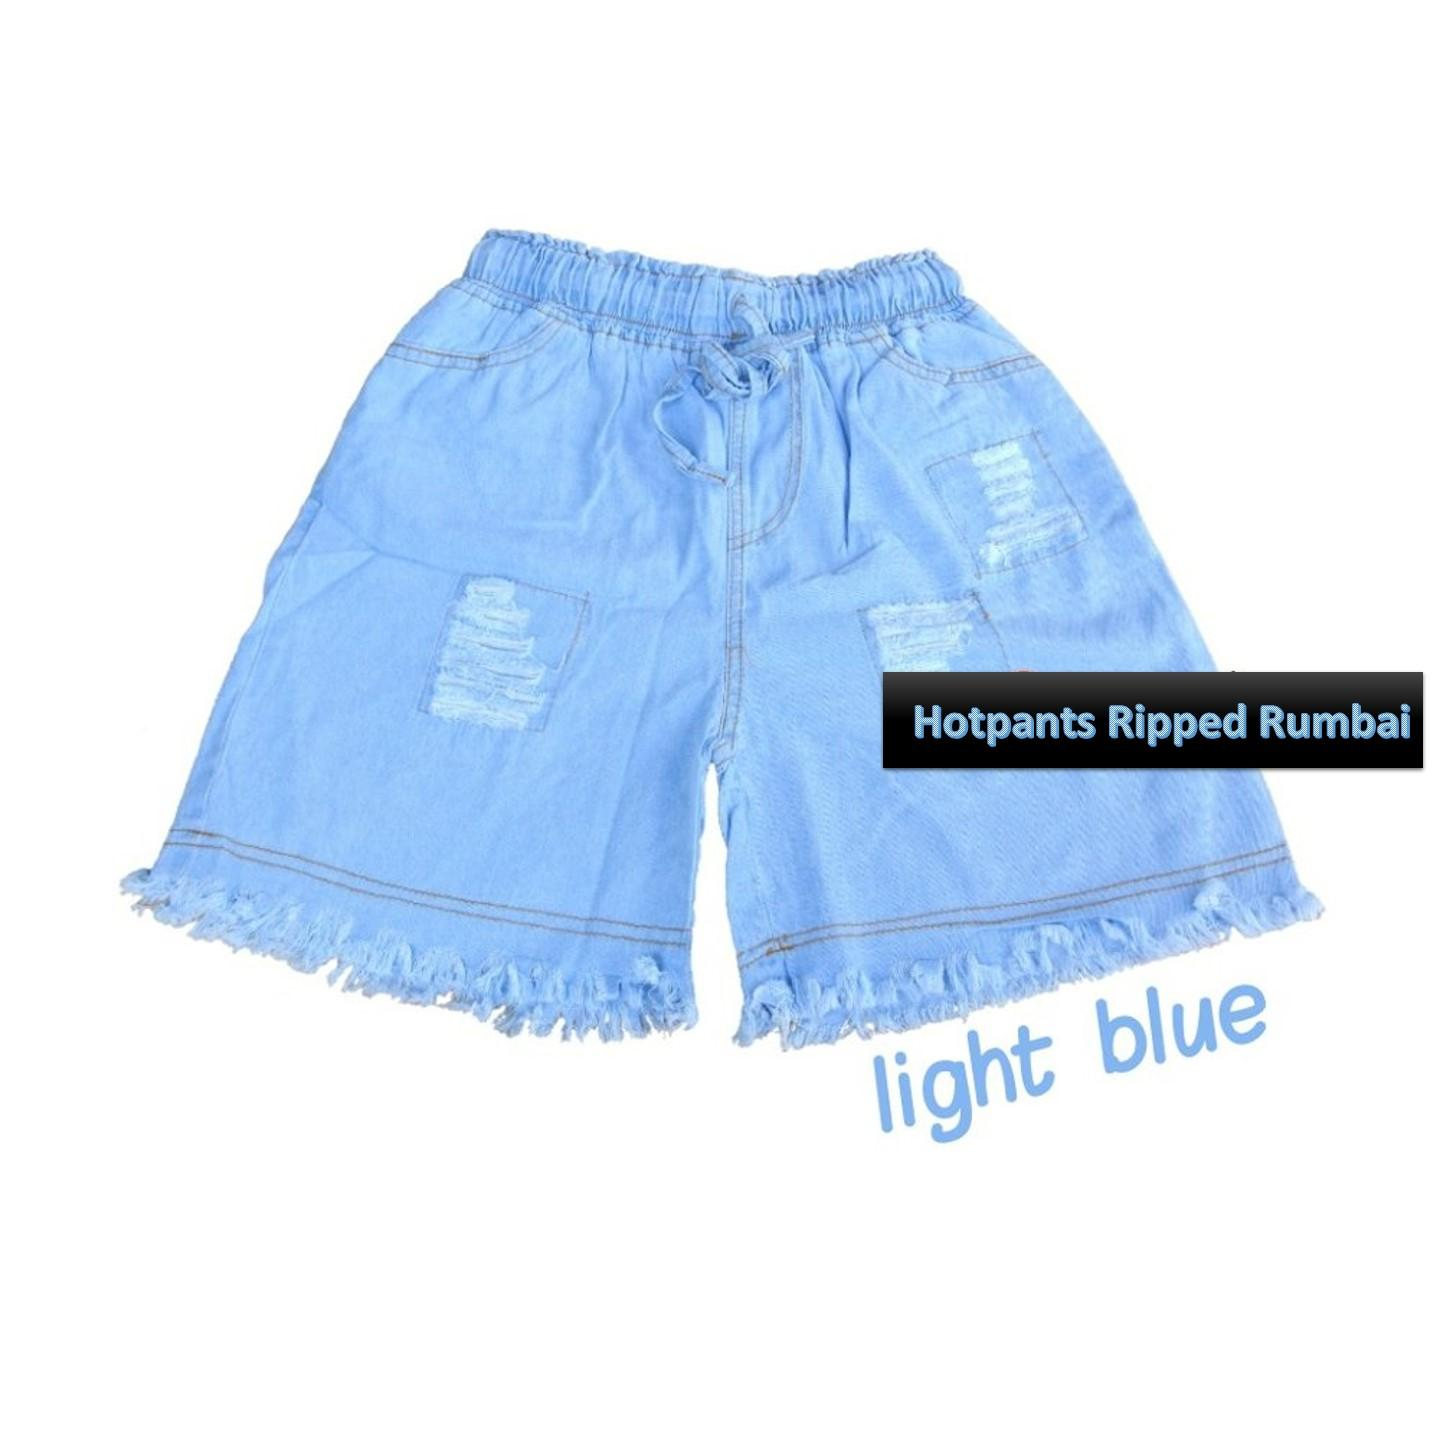 Celana Wanita Hot Pants Ripped Rumbai Jeans - Celana Pendek Celana Santai Fashion Wanita Jeans Pants Summer Gaya Sexy Hot Shorts Celana Sobek Sobek - Light Blue